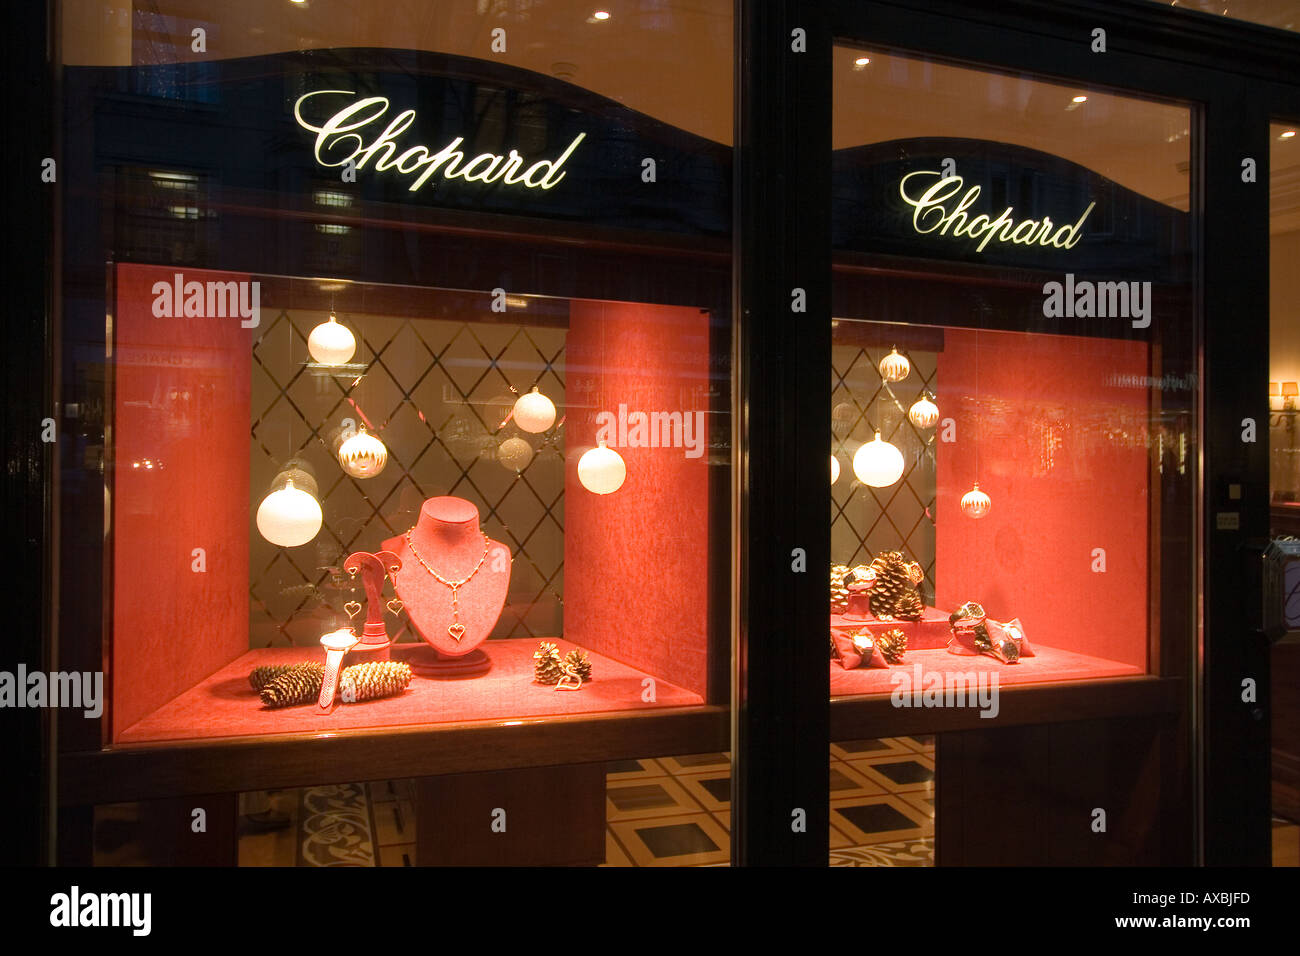 Switzerland Zurich Bahnhofstrasse Chopard jewelry shop window - Stock Image